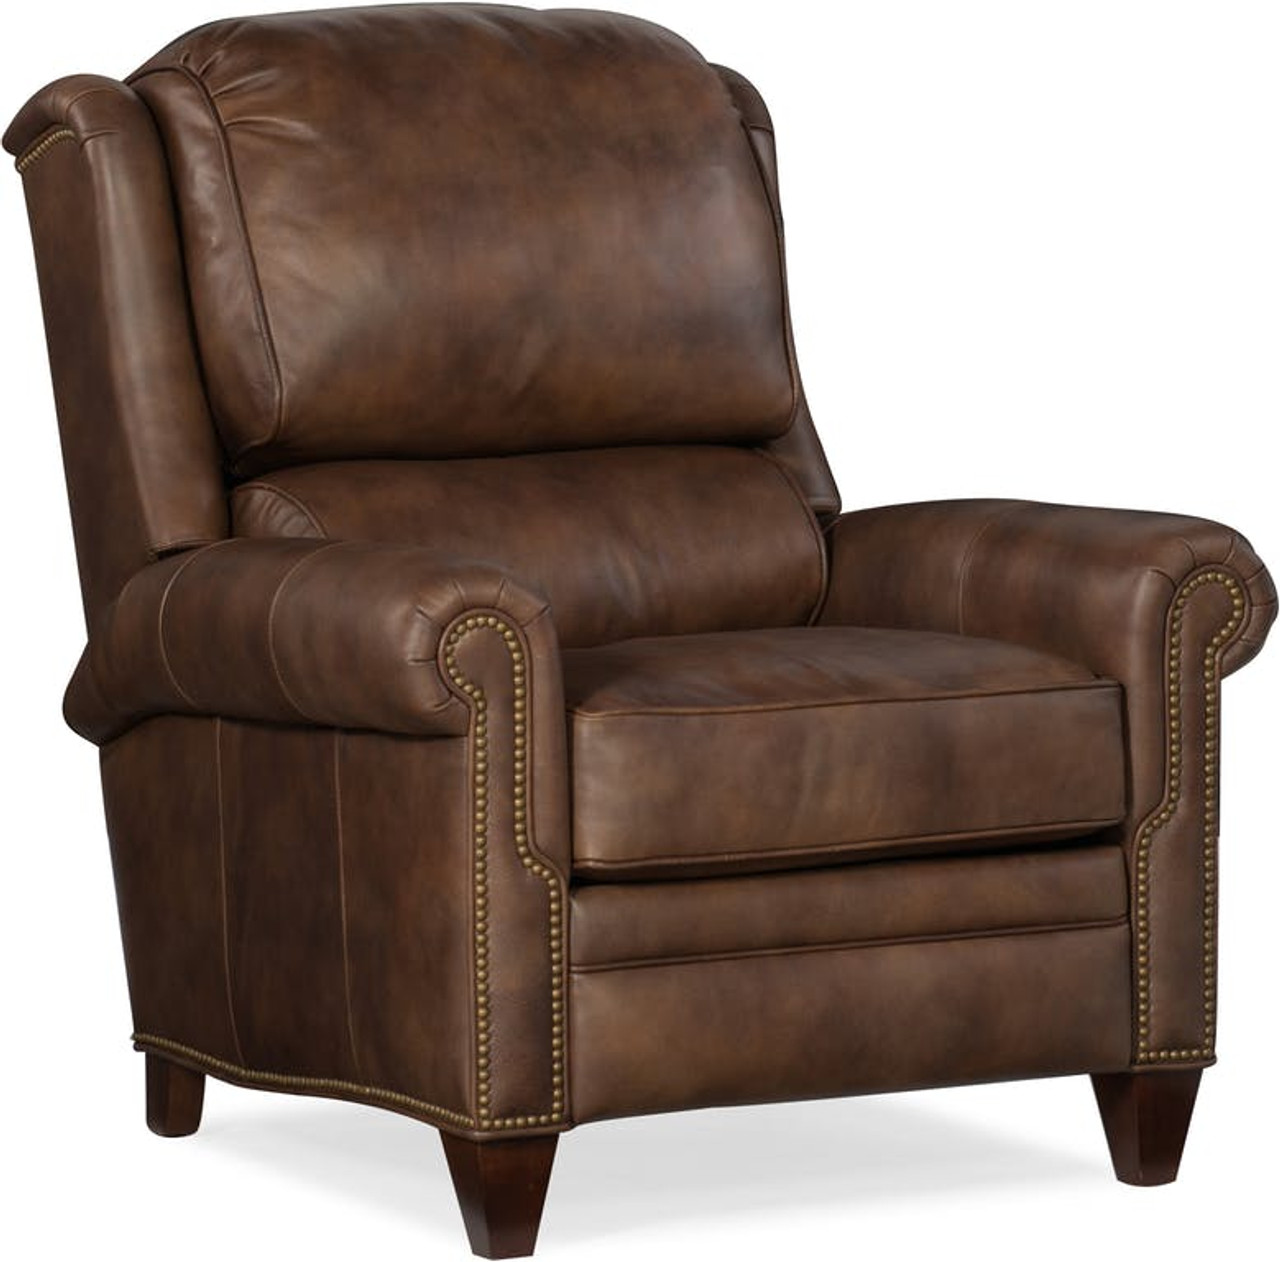 Bradington Young Leather Williams Recliner 4068